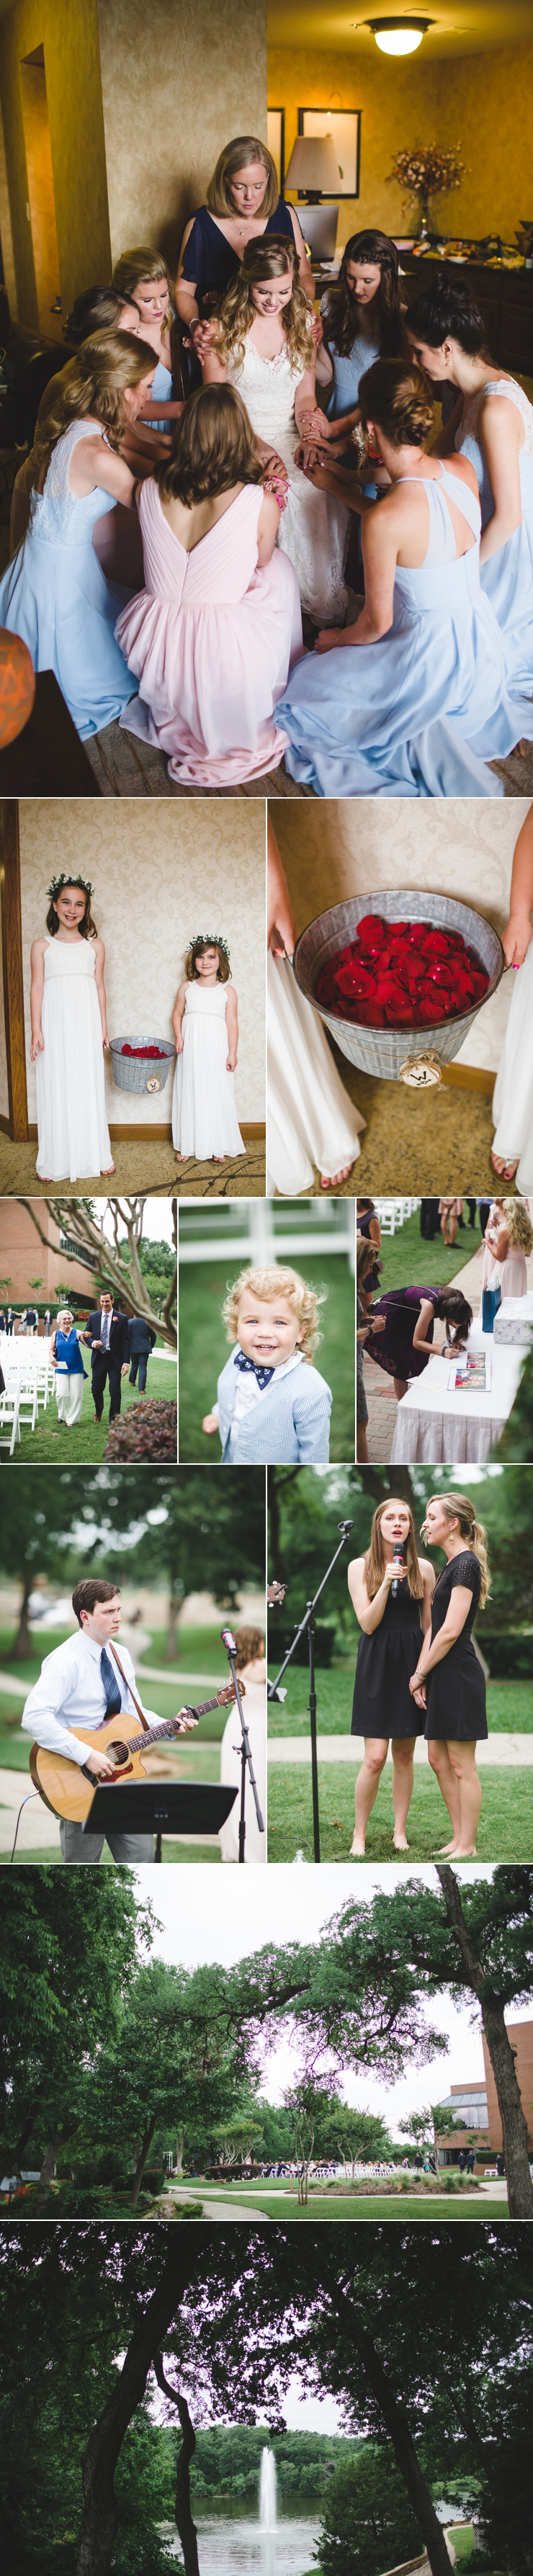 White Wedding - Blog Collages 7.jpg